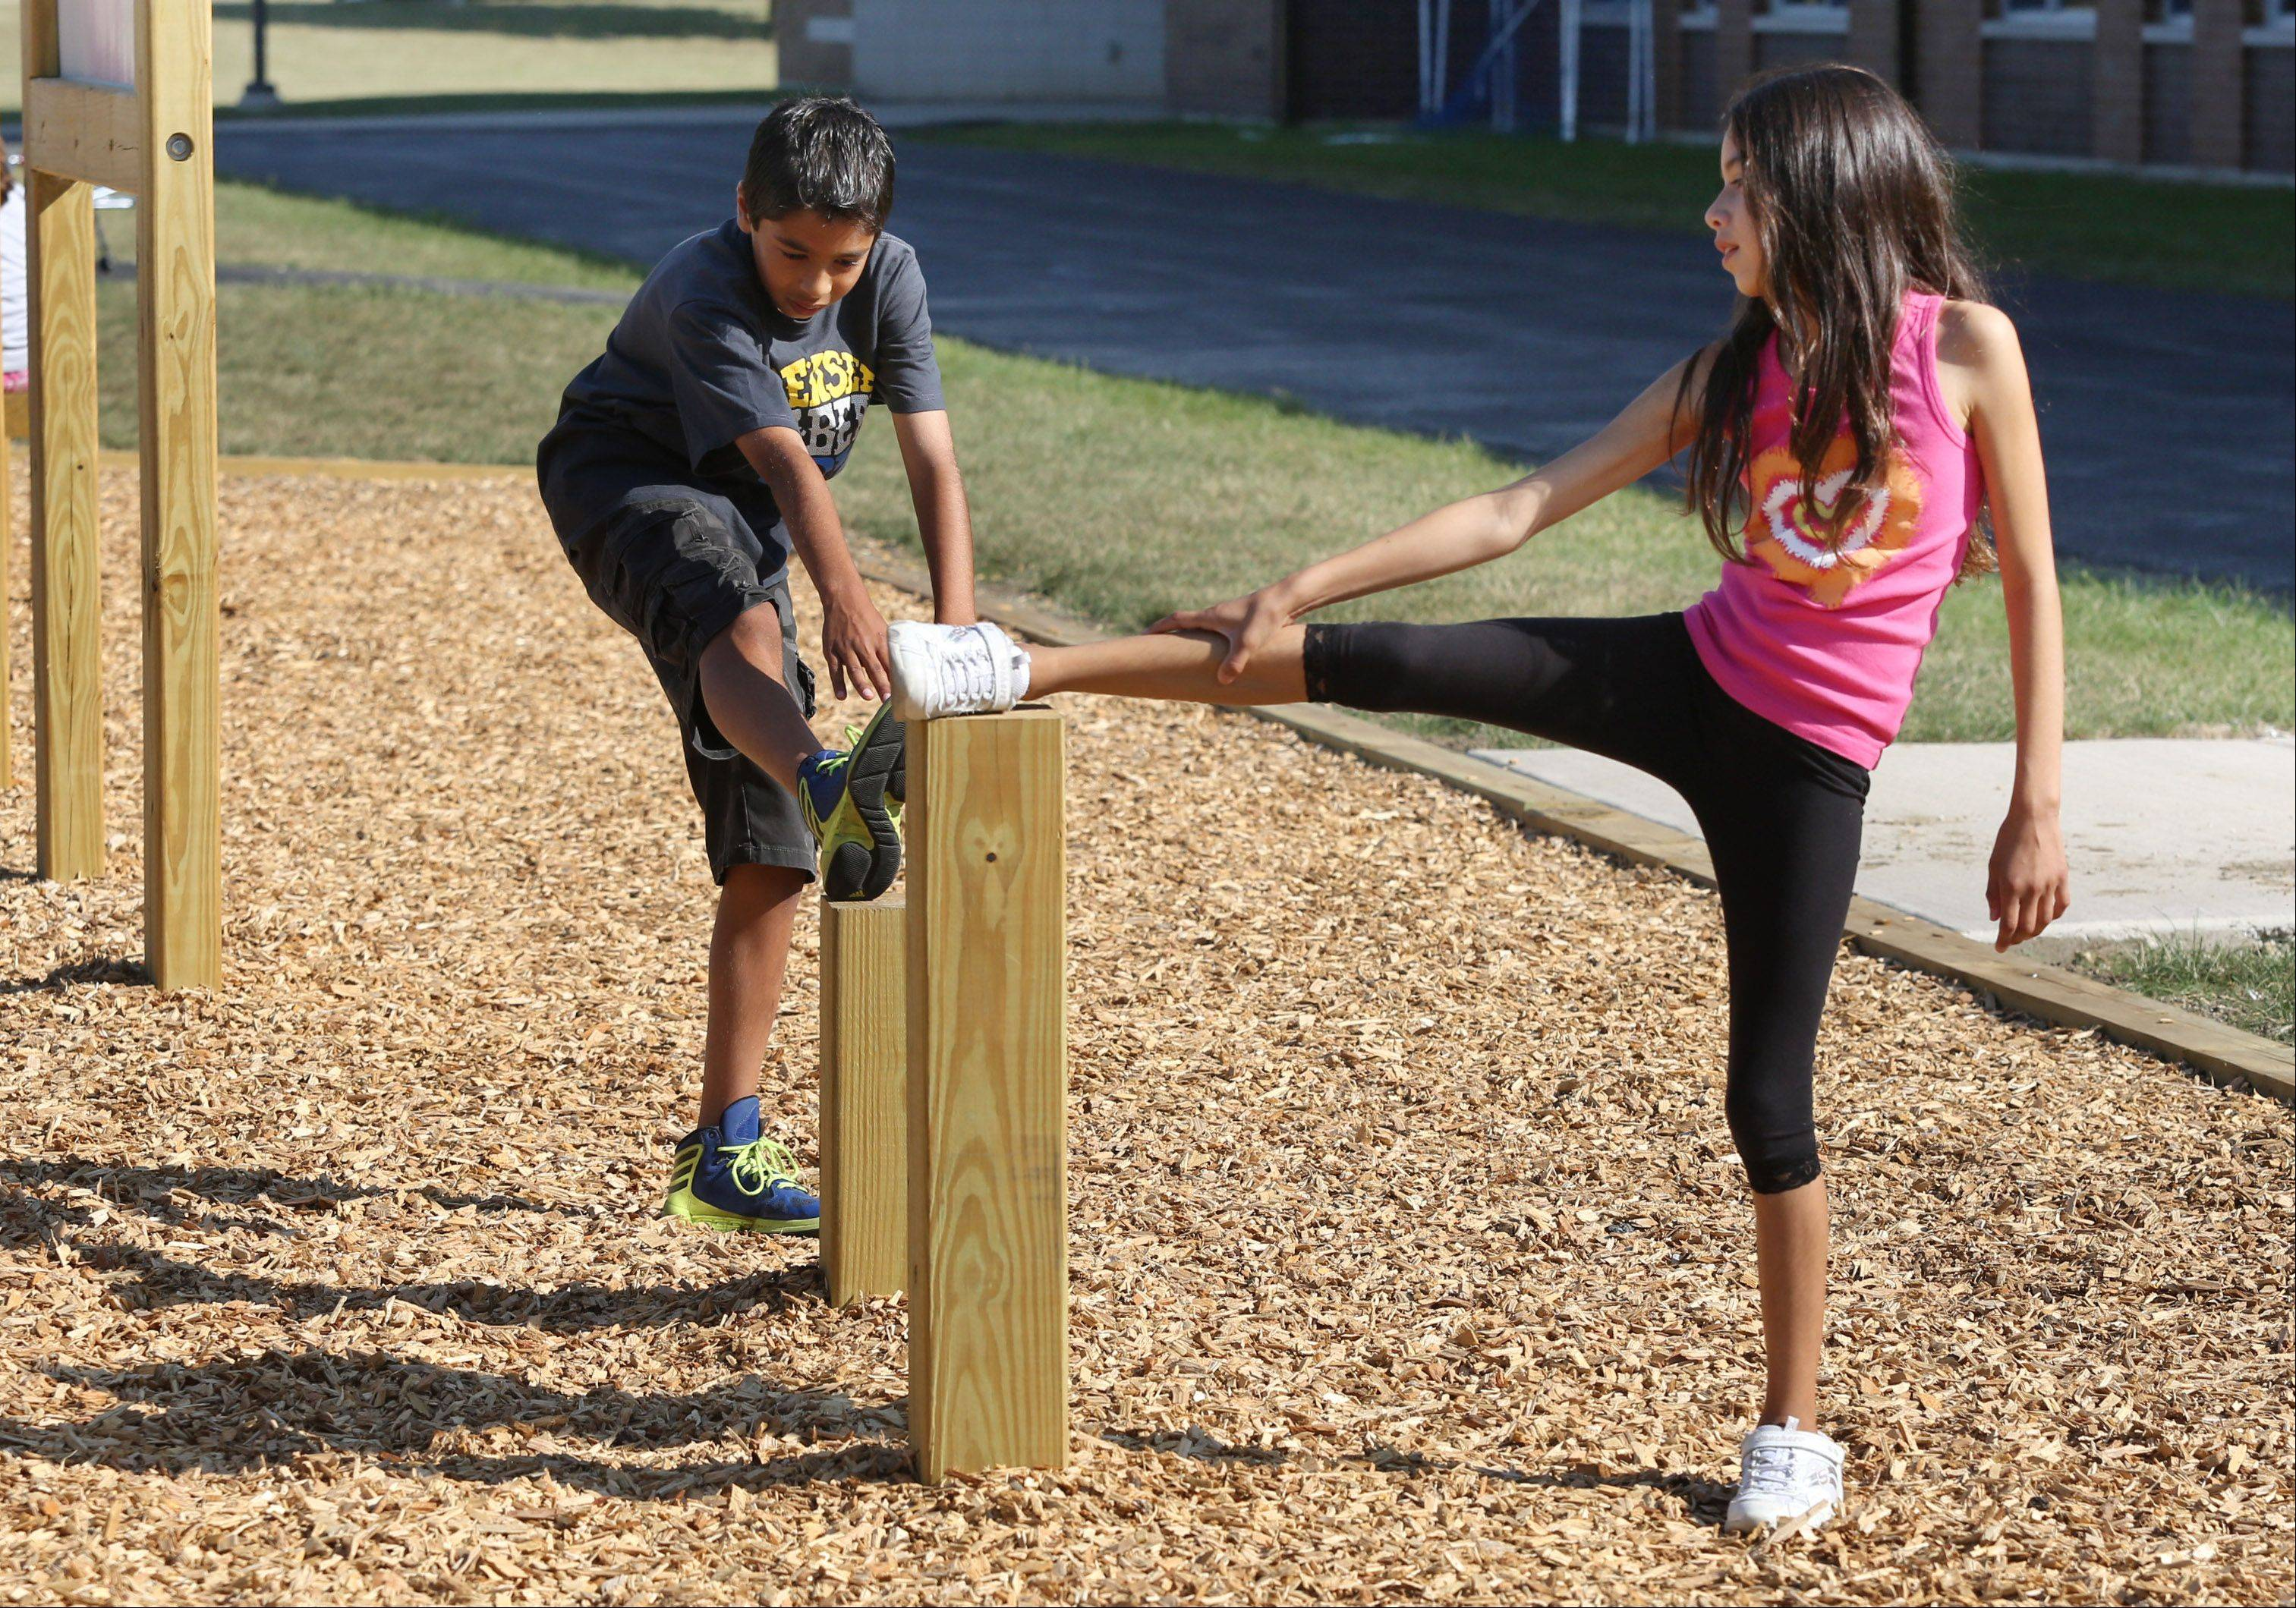 Fifth-graders Gabby Colin and Ishaan Shah stretch on the new Fit-Trail station at Woodland Intermediate School in Gurnee. The new fitness station will be used for students during the school day and available to the community after school hours.